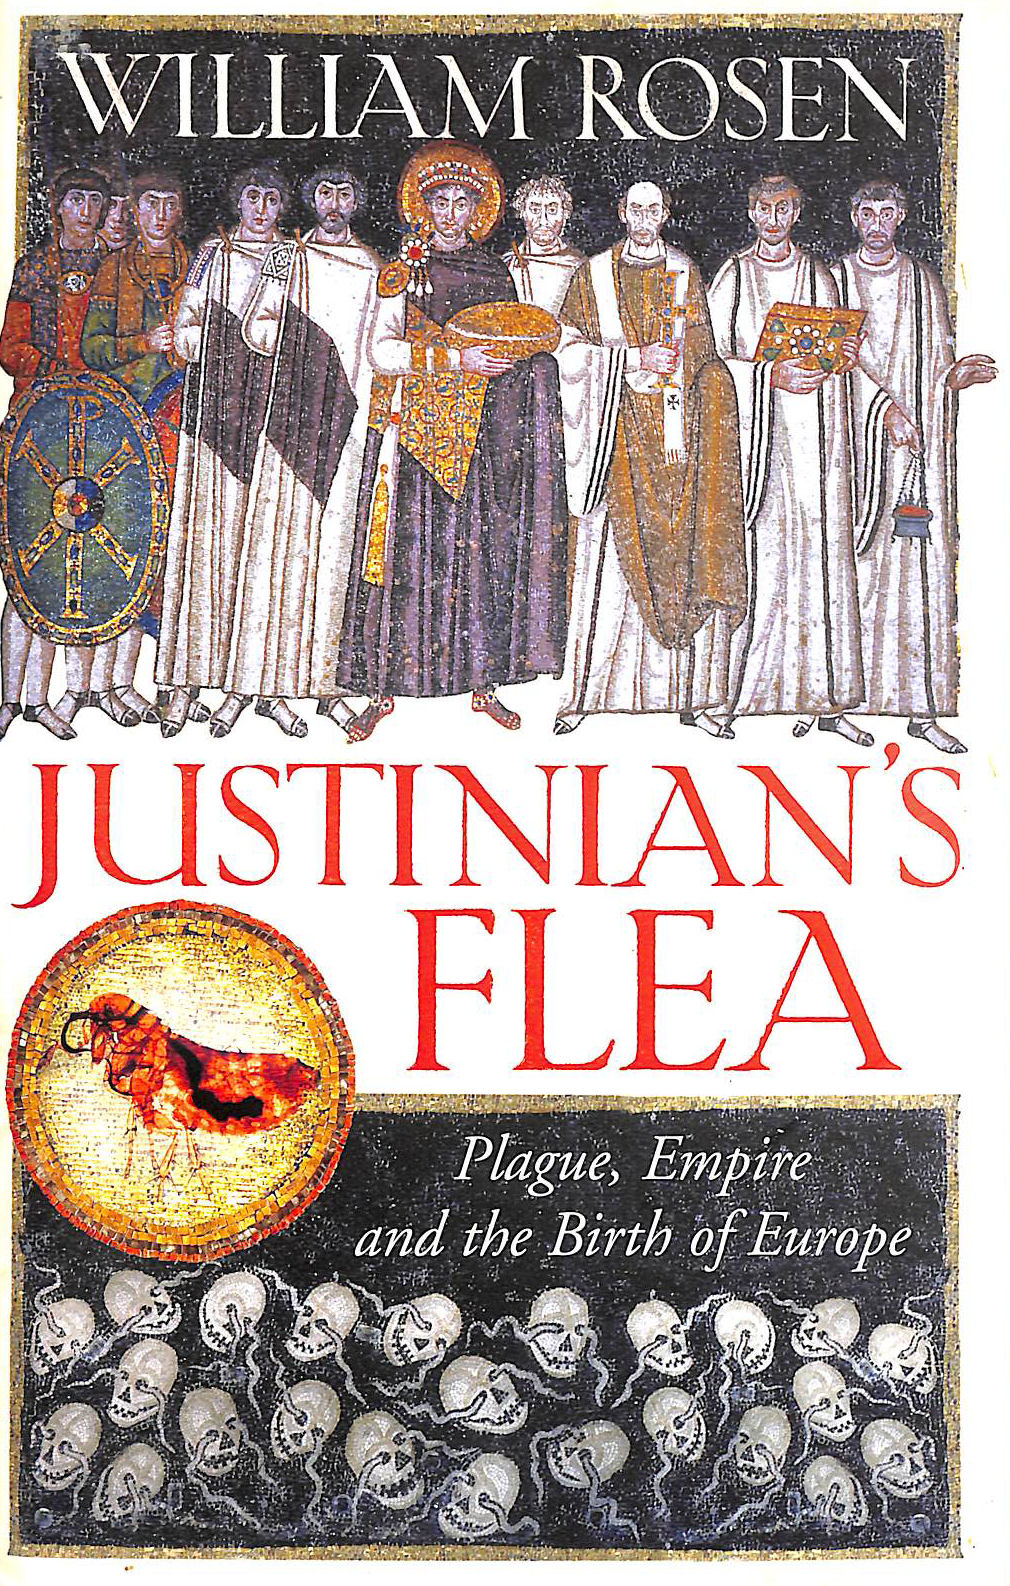 Image for Justinian's Flea: Plague, Empire and the Birth of Europe